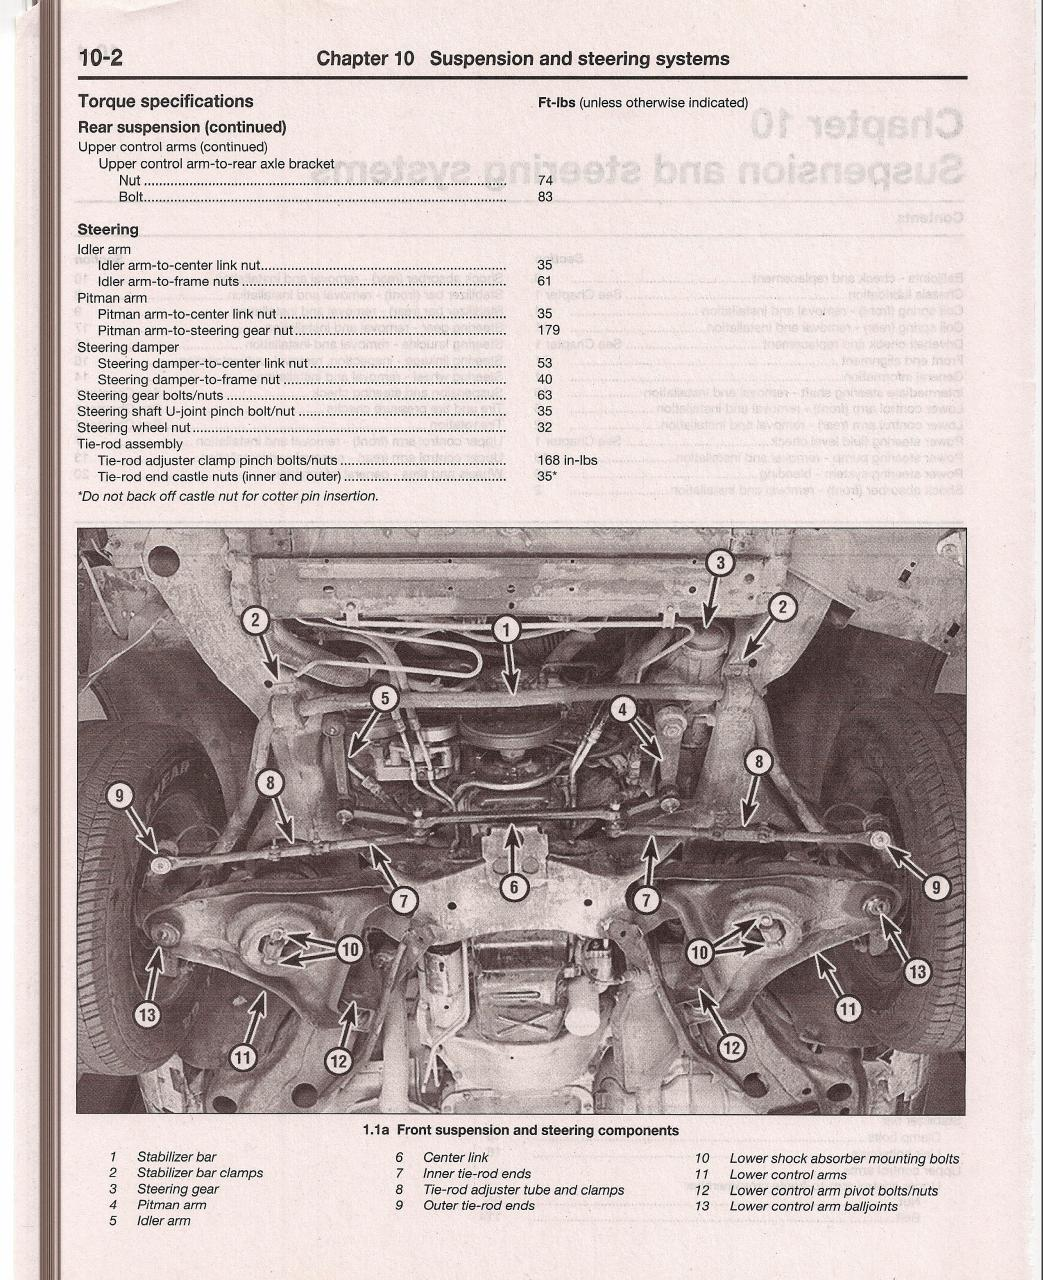 ch 10 suspension and steering0001.pdf - page 2/16